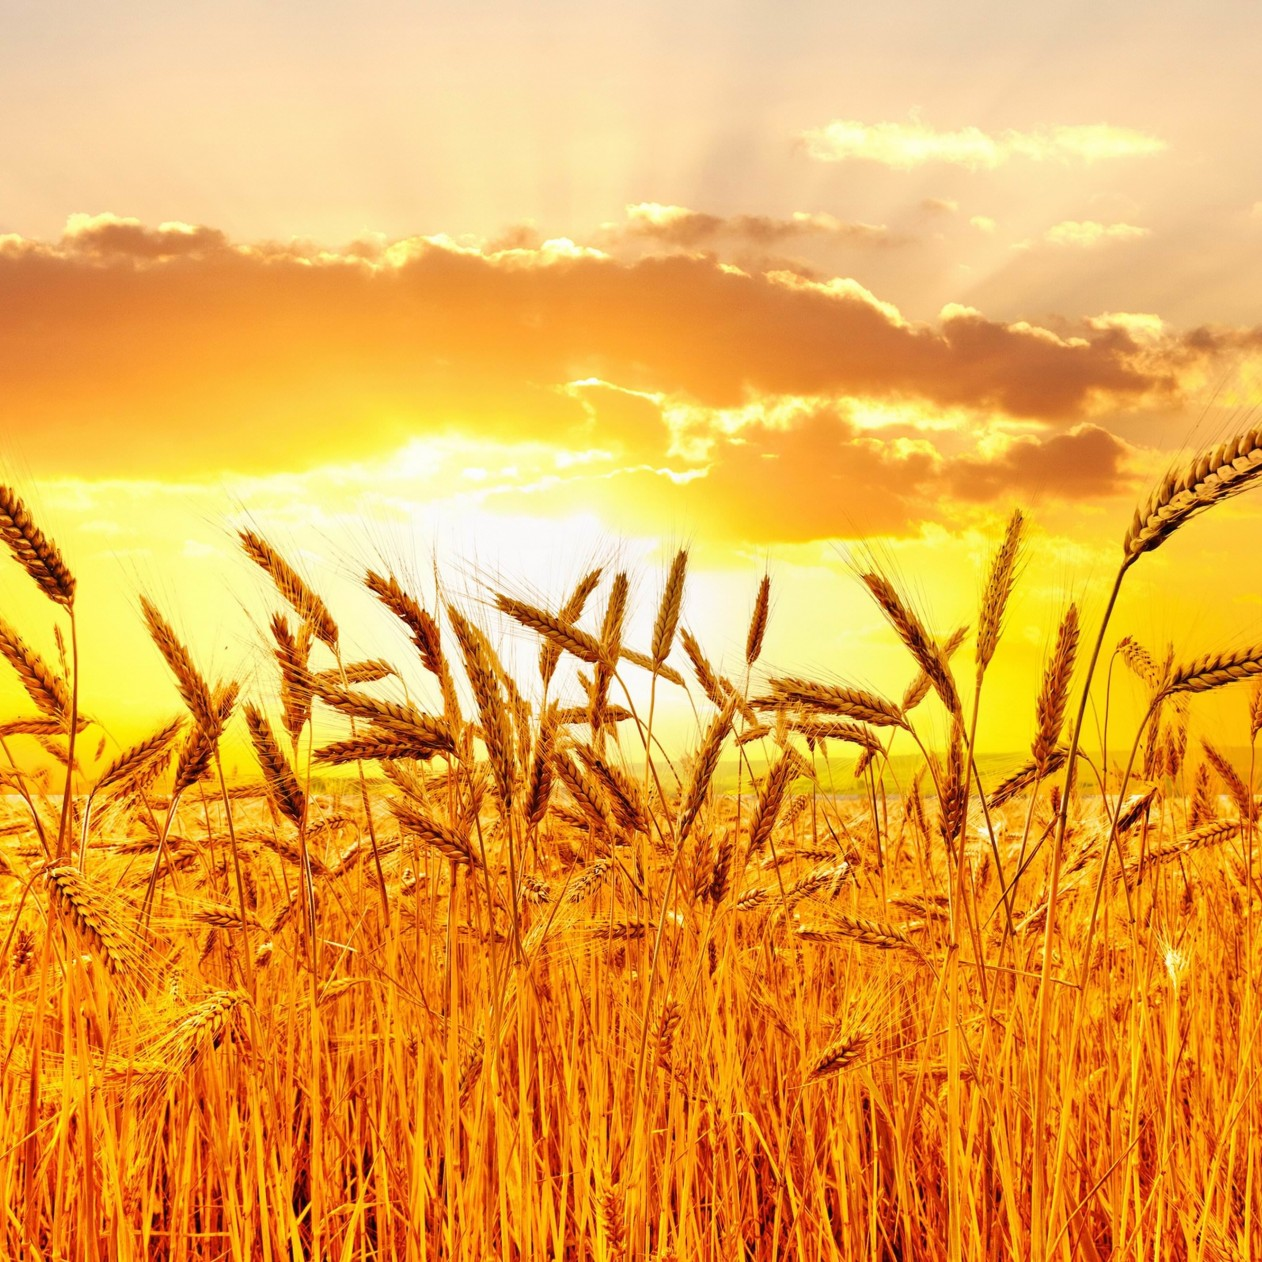 Golden Wheat Field At Sunset Wallpaper for Apple iPad mini